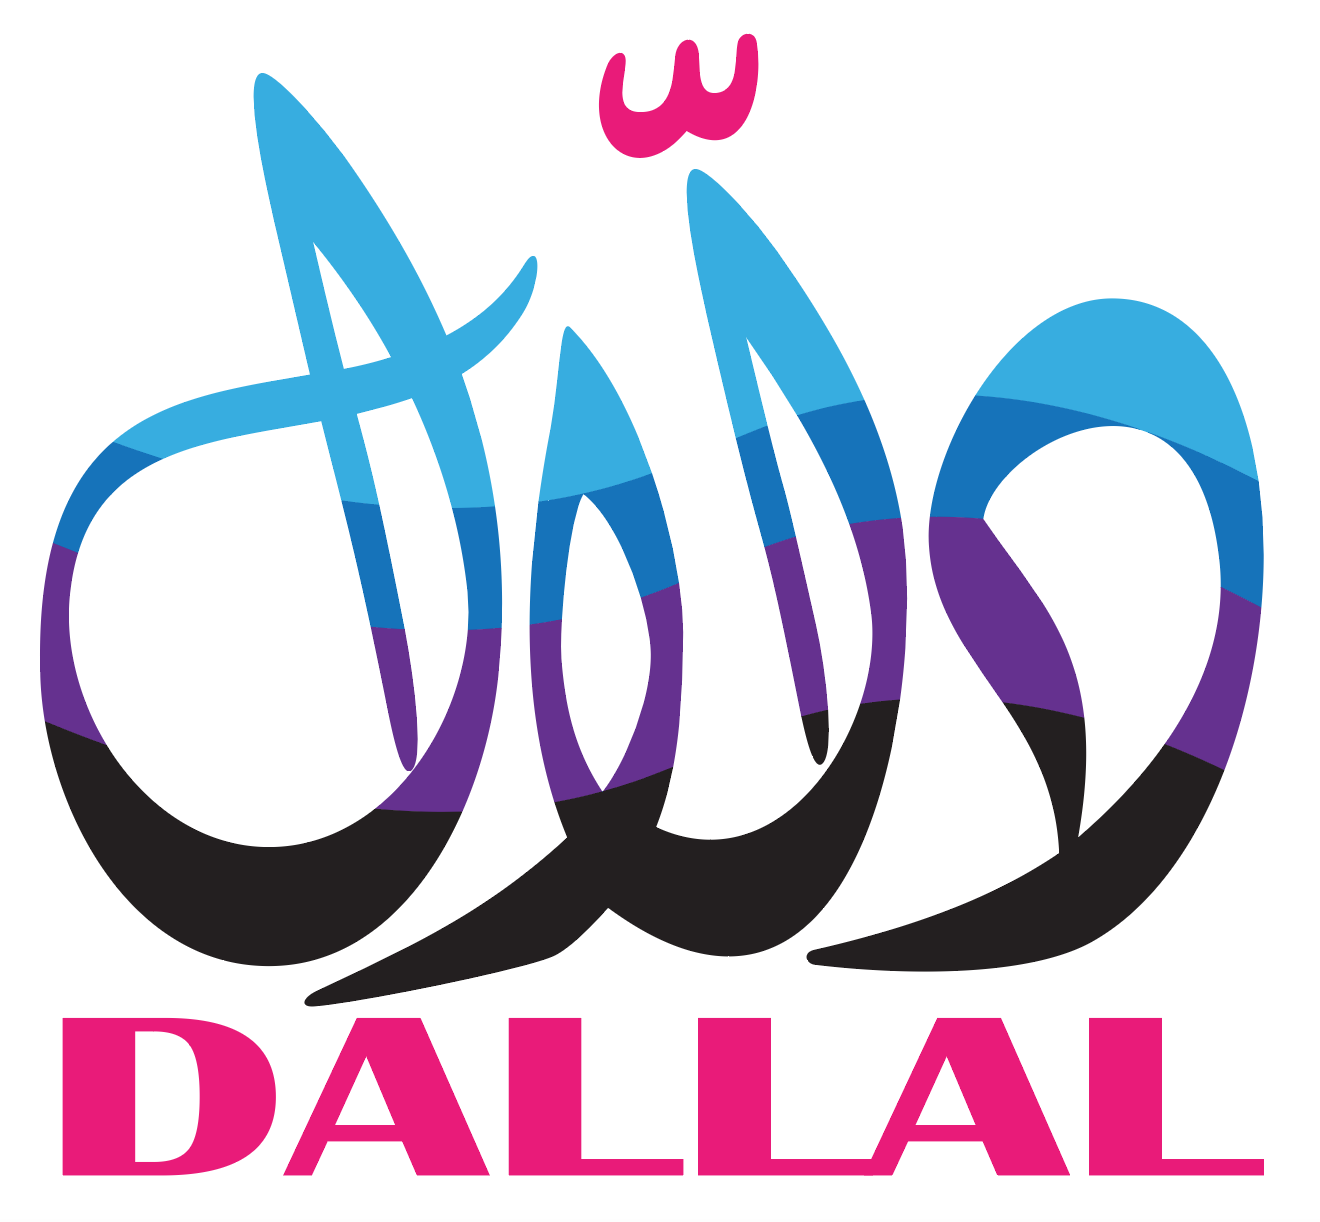 DALLAL - Premium Arabic Domain Names